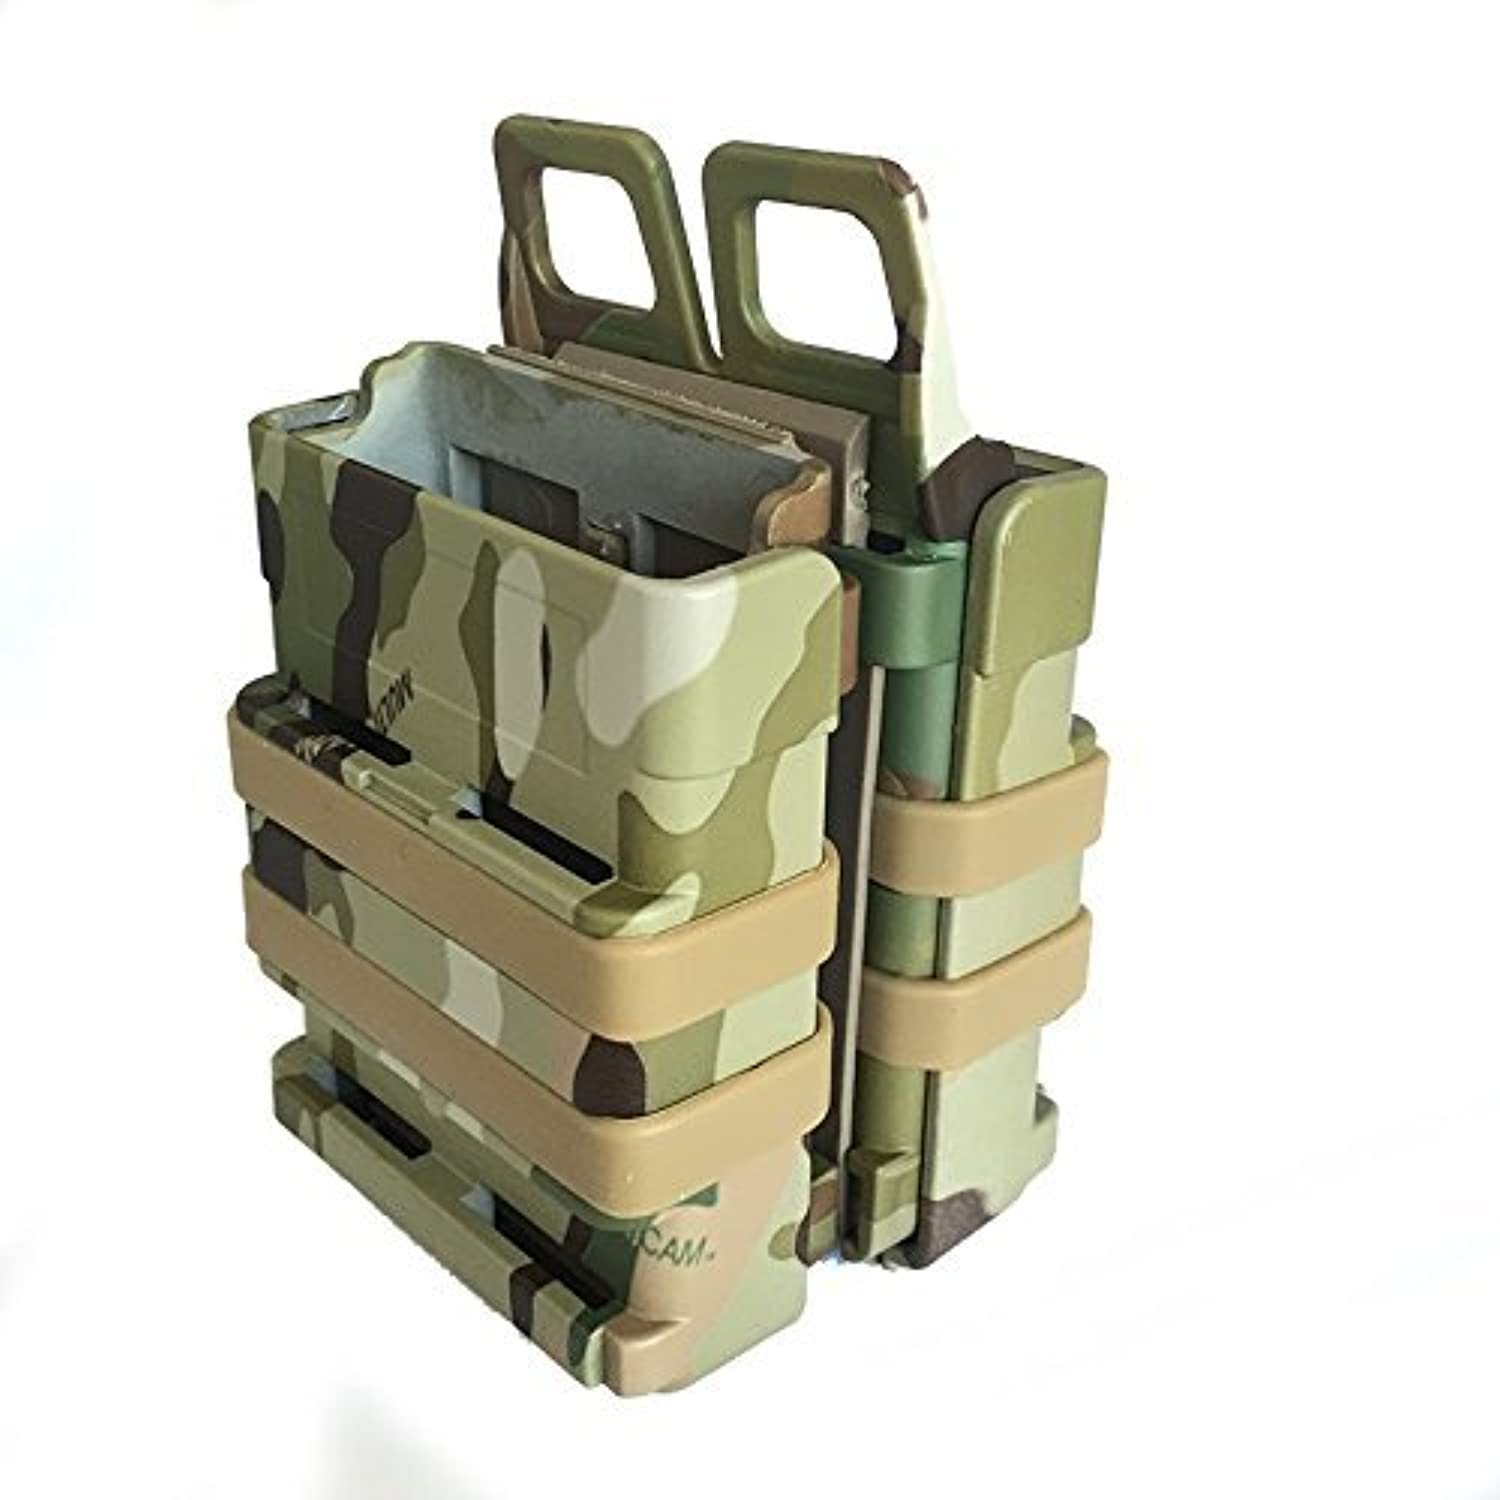 FastMag FAST DOUBLE Magazine Holster Pouch Set MOLLE SYSTEM Multicam (MC) by AirSoft